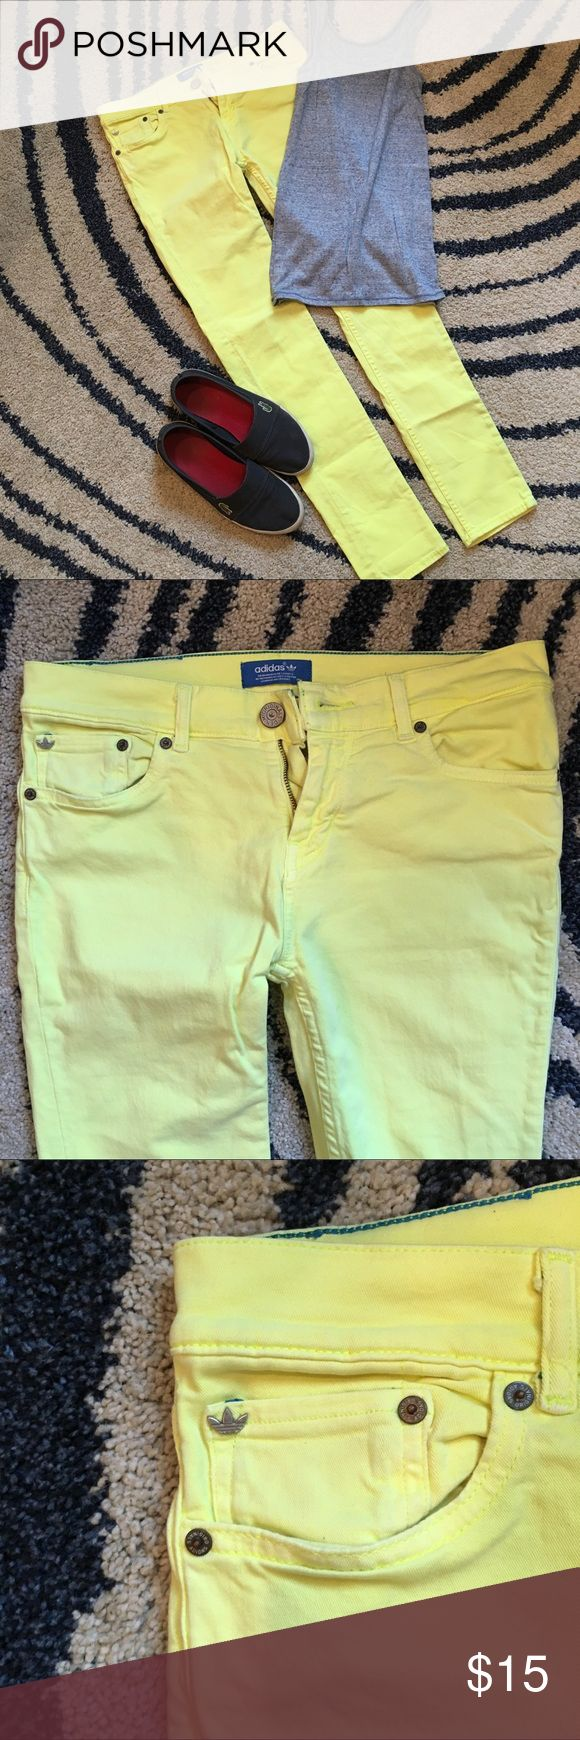 "Neon yellow Adidas skinny jeans Super fun neon yellow pants from Addidas. Size tag has been removed but will fit a 29""-30"" waist, inseam is 28"".    🦄 bundle and save 20%!! 🦄 adidas Jeans Skinny"